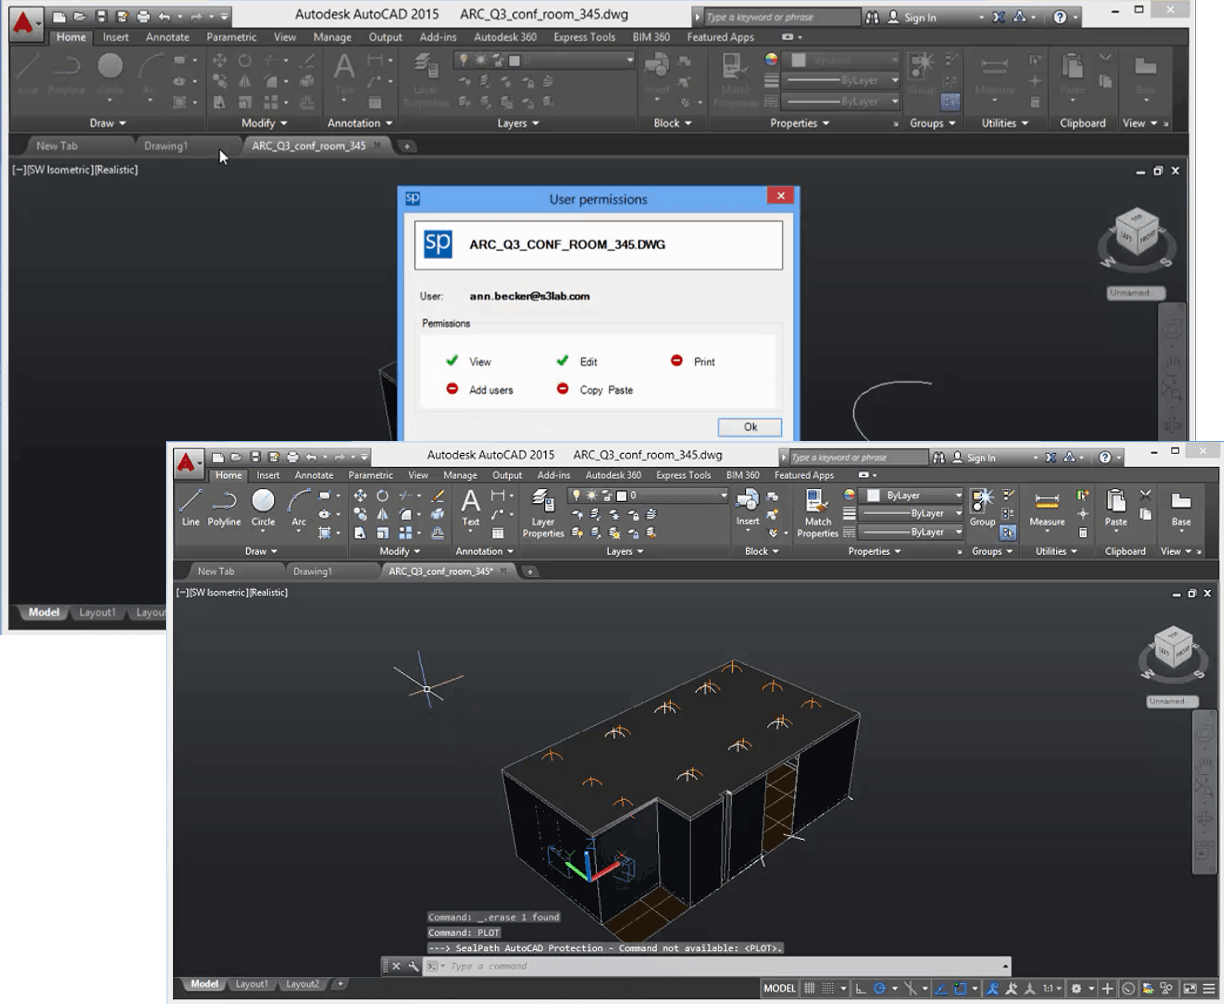 SealPath supports integration with new versions of AutoCAD - Sealpath